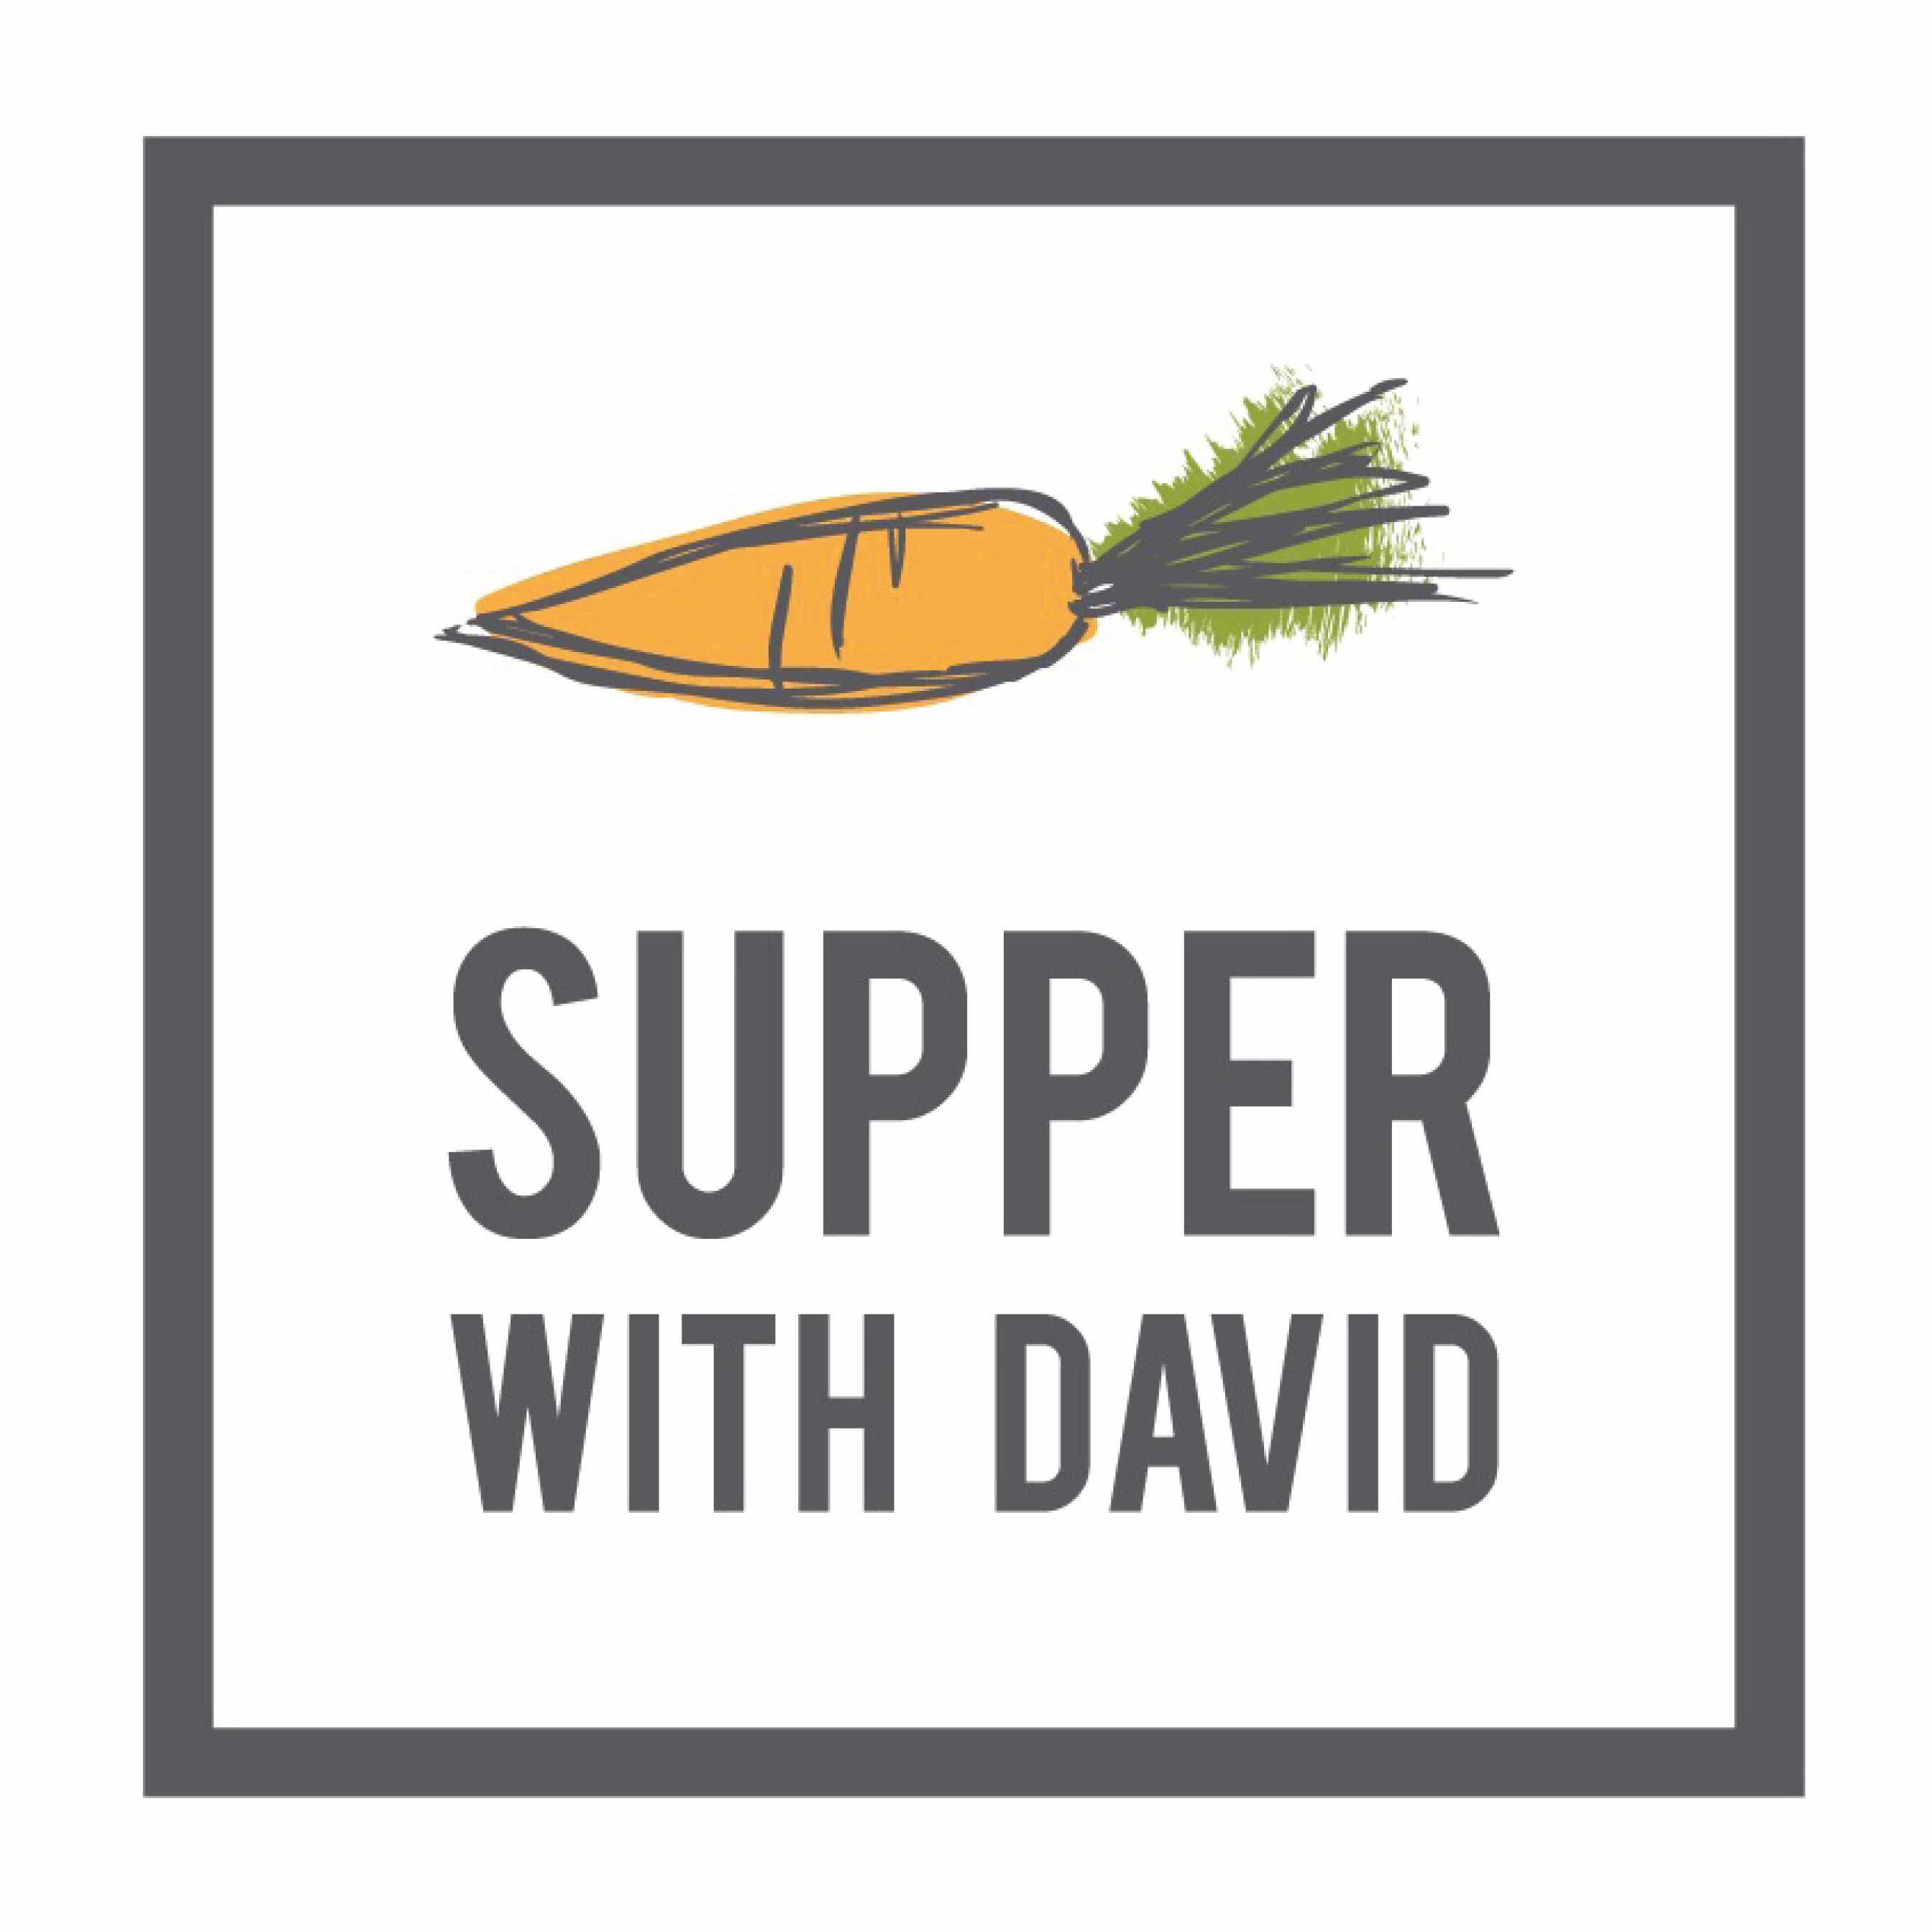 Supper with David